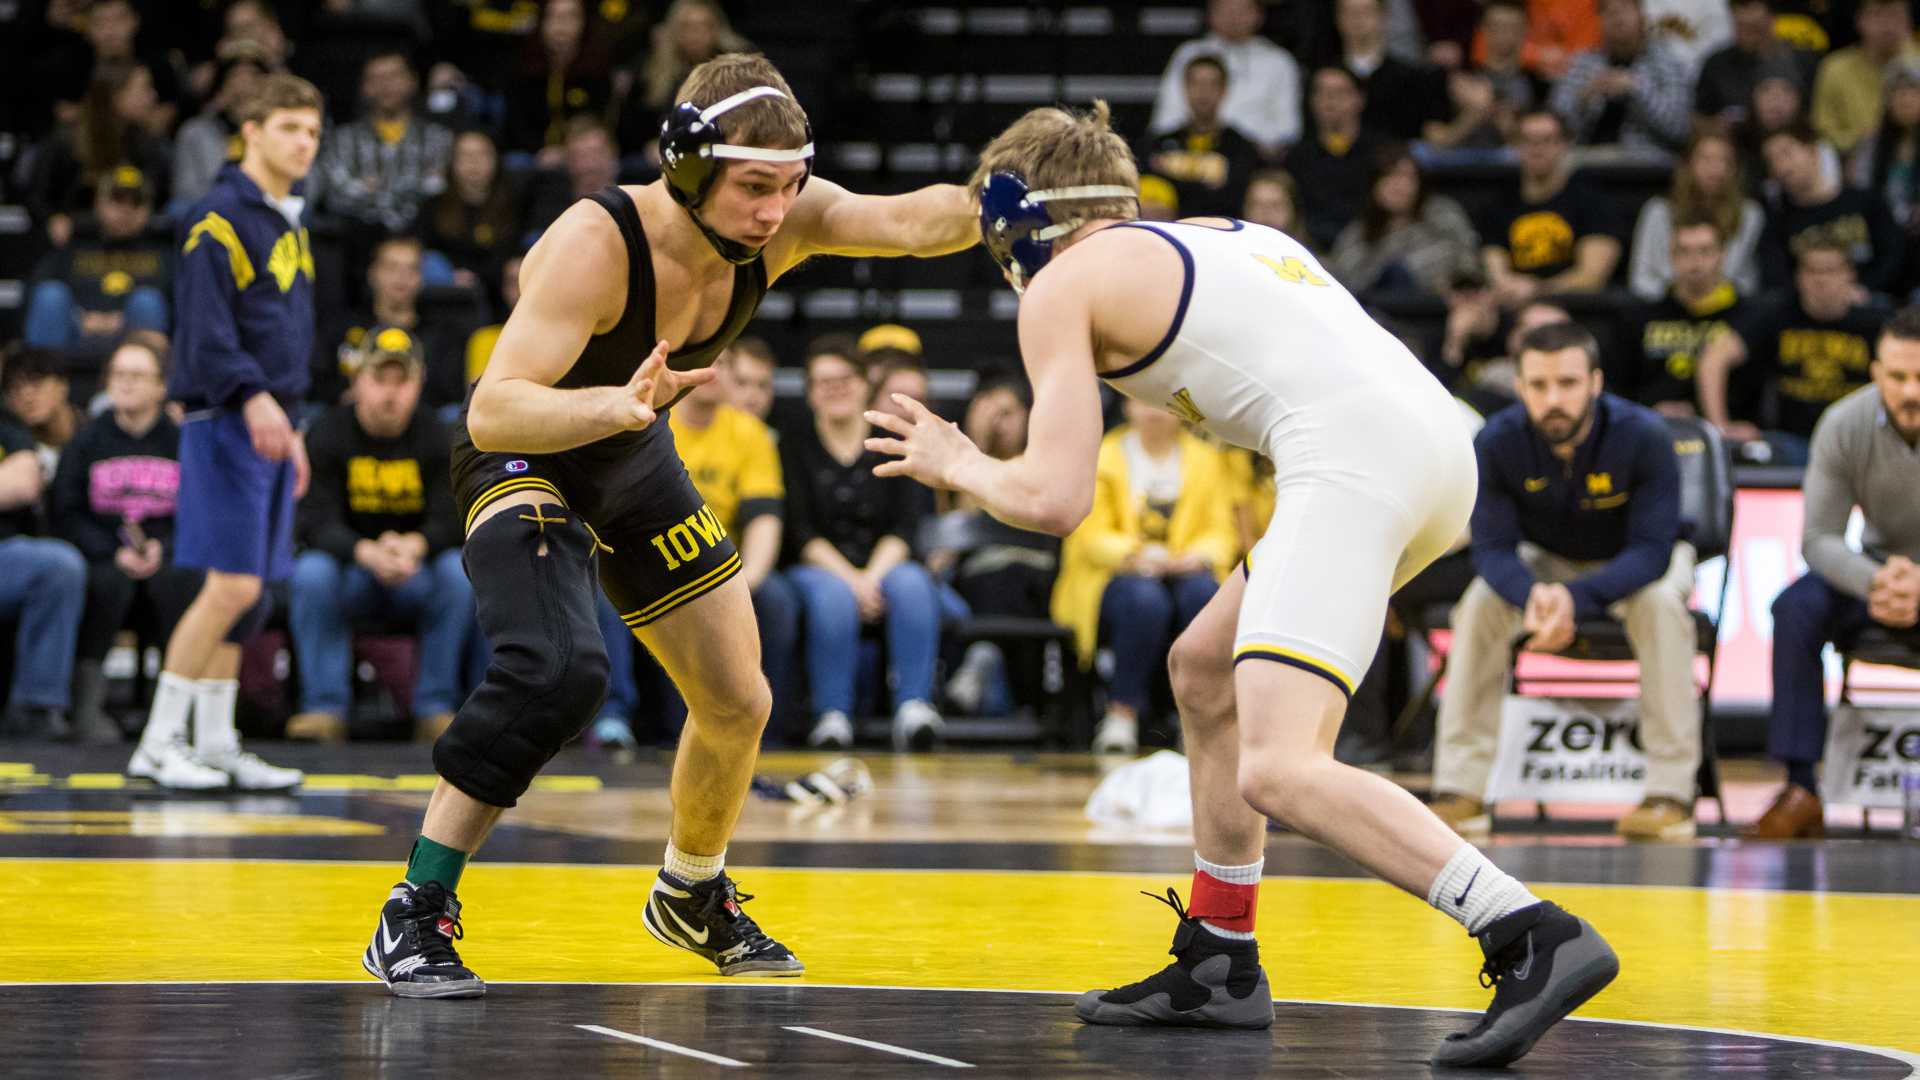 Iowa wrestler Spencer Lee grapples with Michigan wrestler Drew Martin at Carver-Hawkeye Arena on Saturday, Jan. 27, 2018. The Wolverines defeated the Hawkeyes 19-17. (David Harmantas/The Daily Iowan)